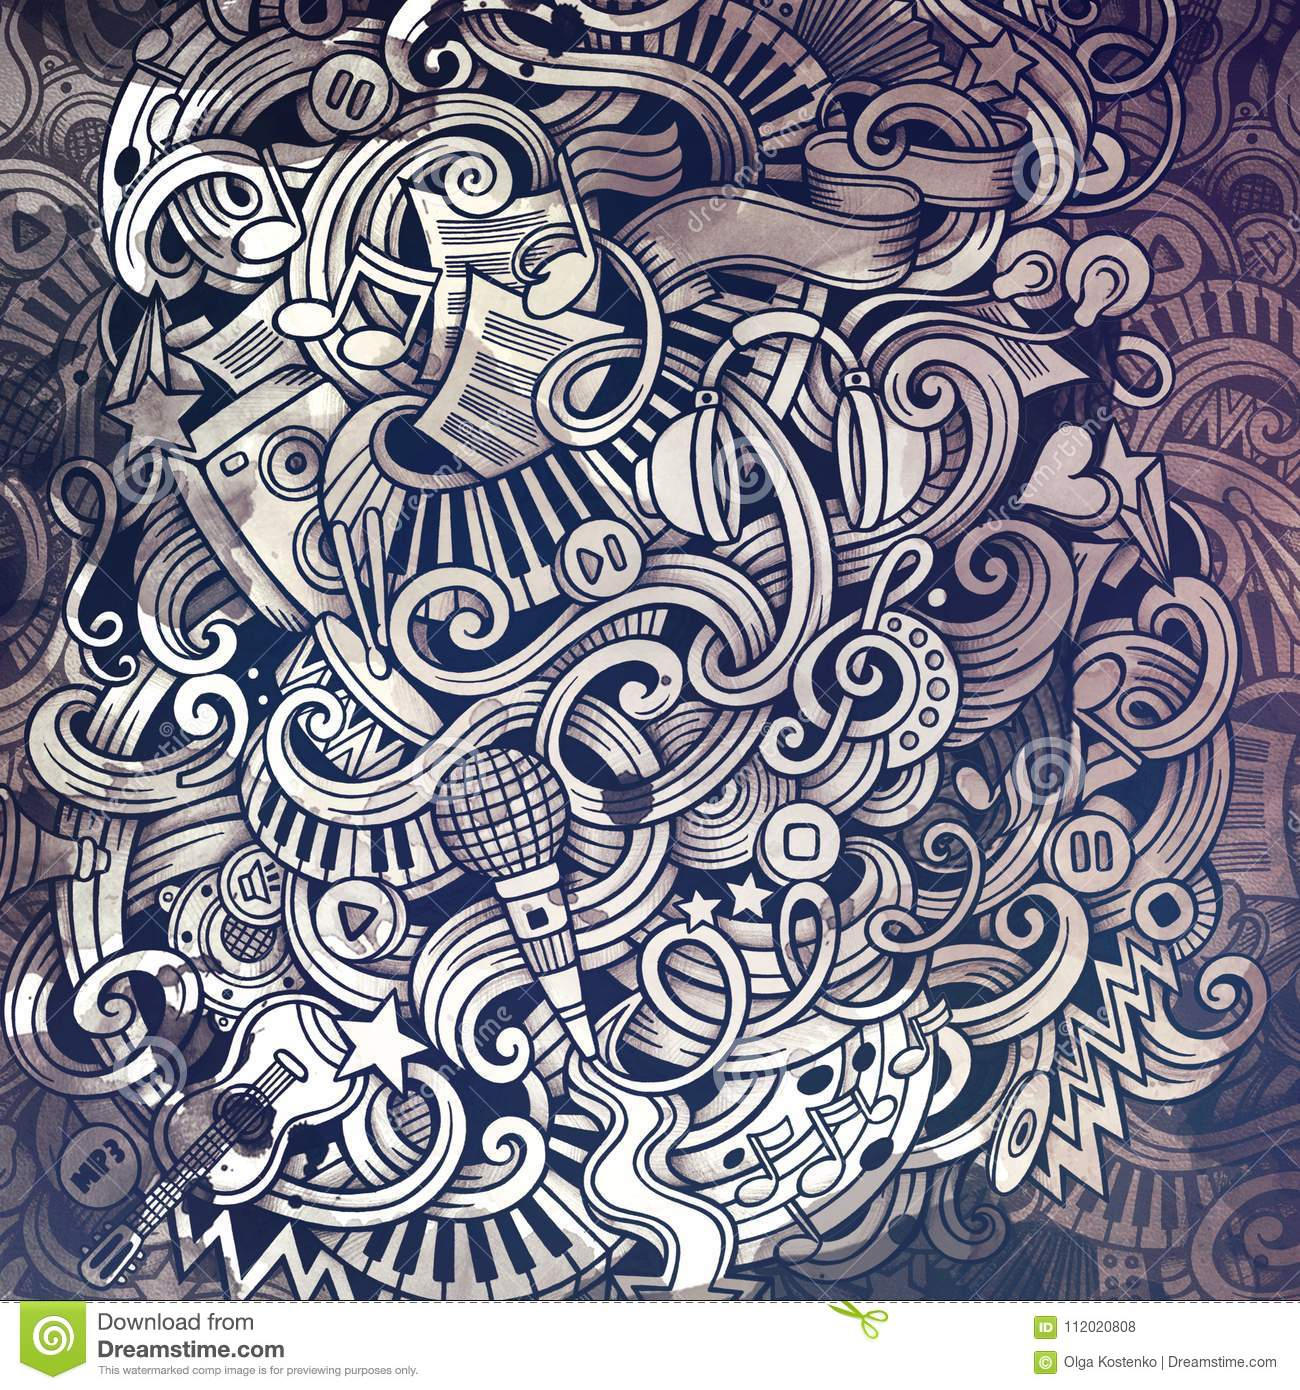 Doodles Musical Illustration Creative Music Background